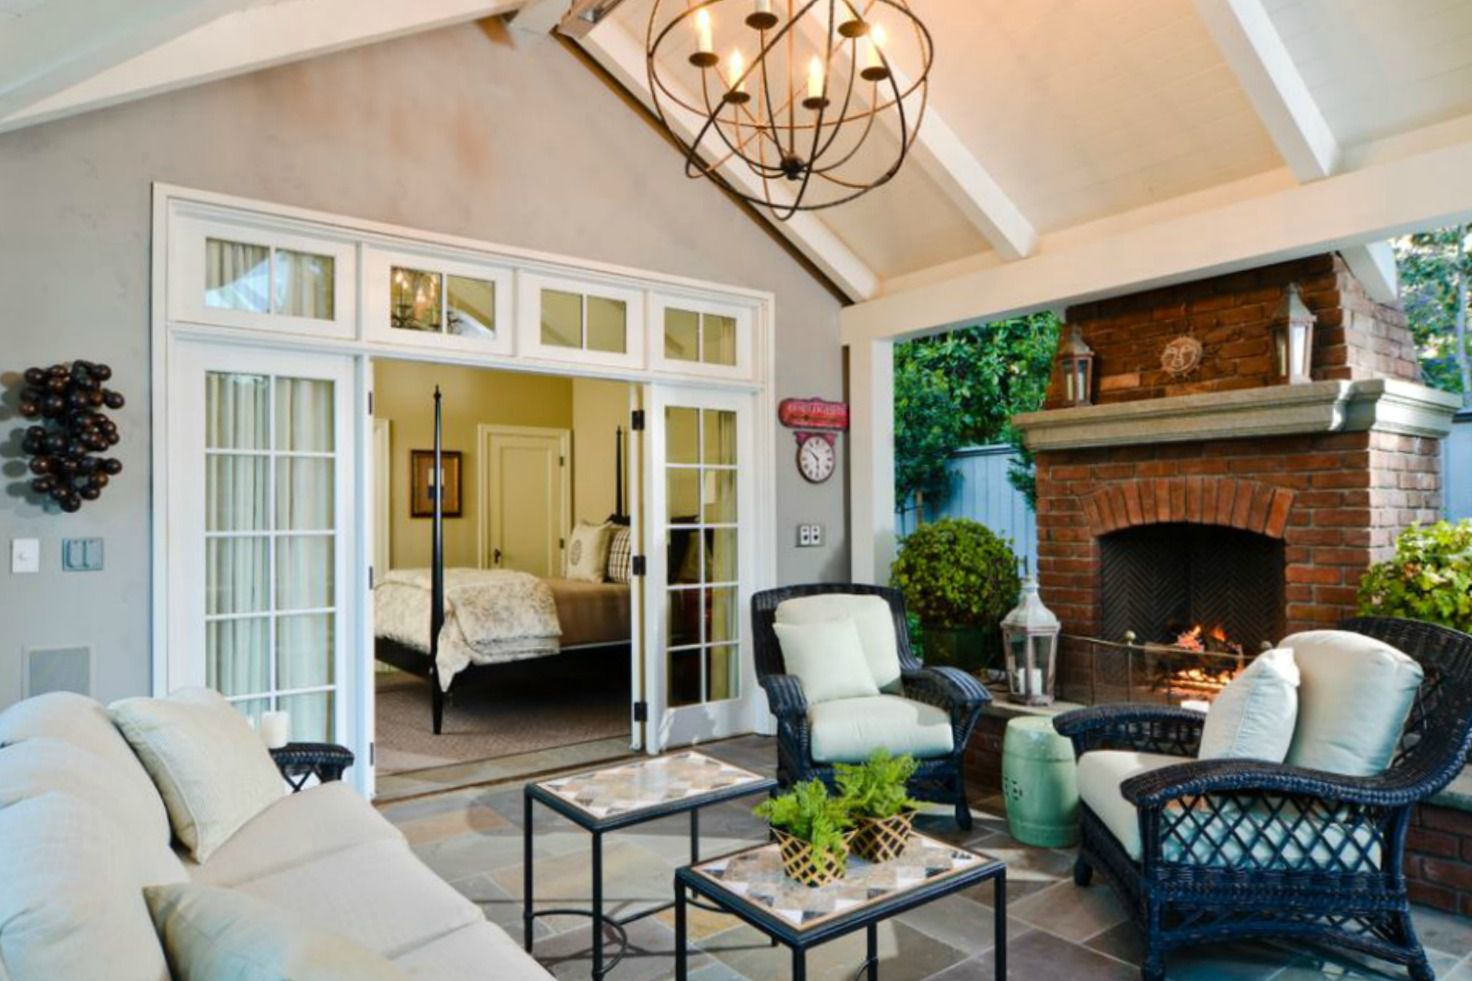 50 Outdoor Living Room Design Ideas